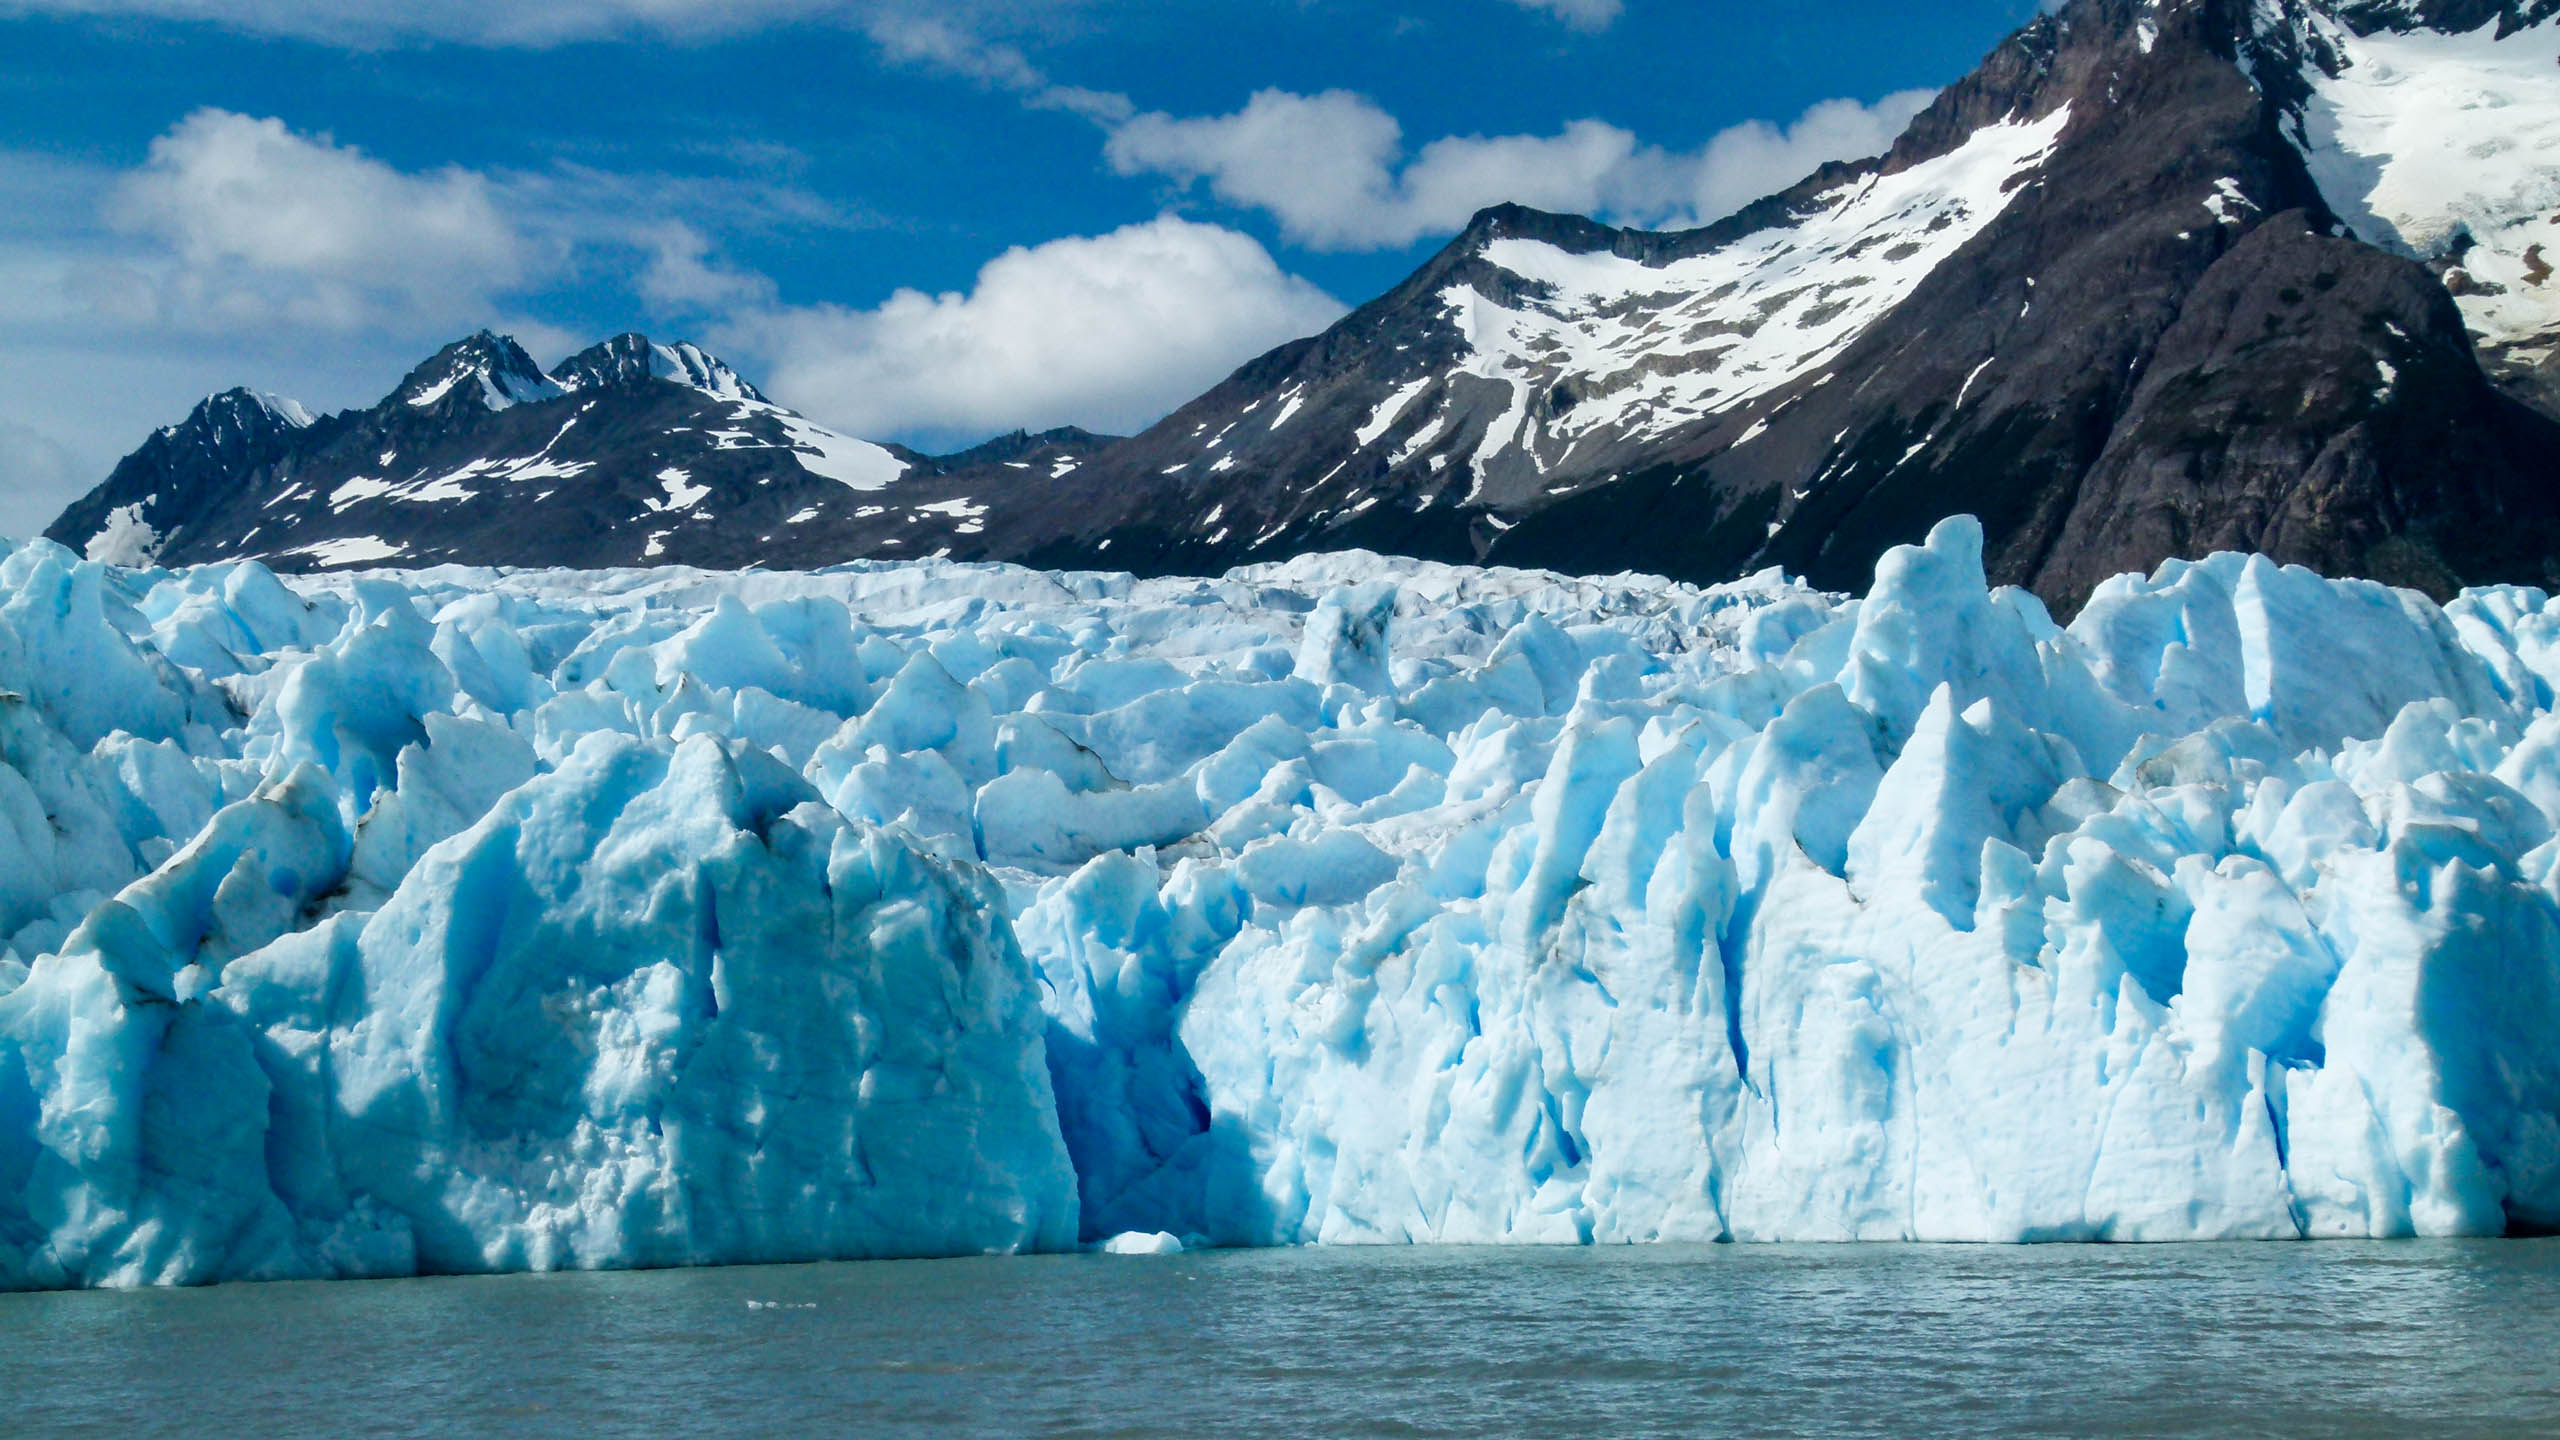 Glacier on edge of water in Chile